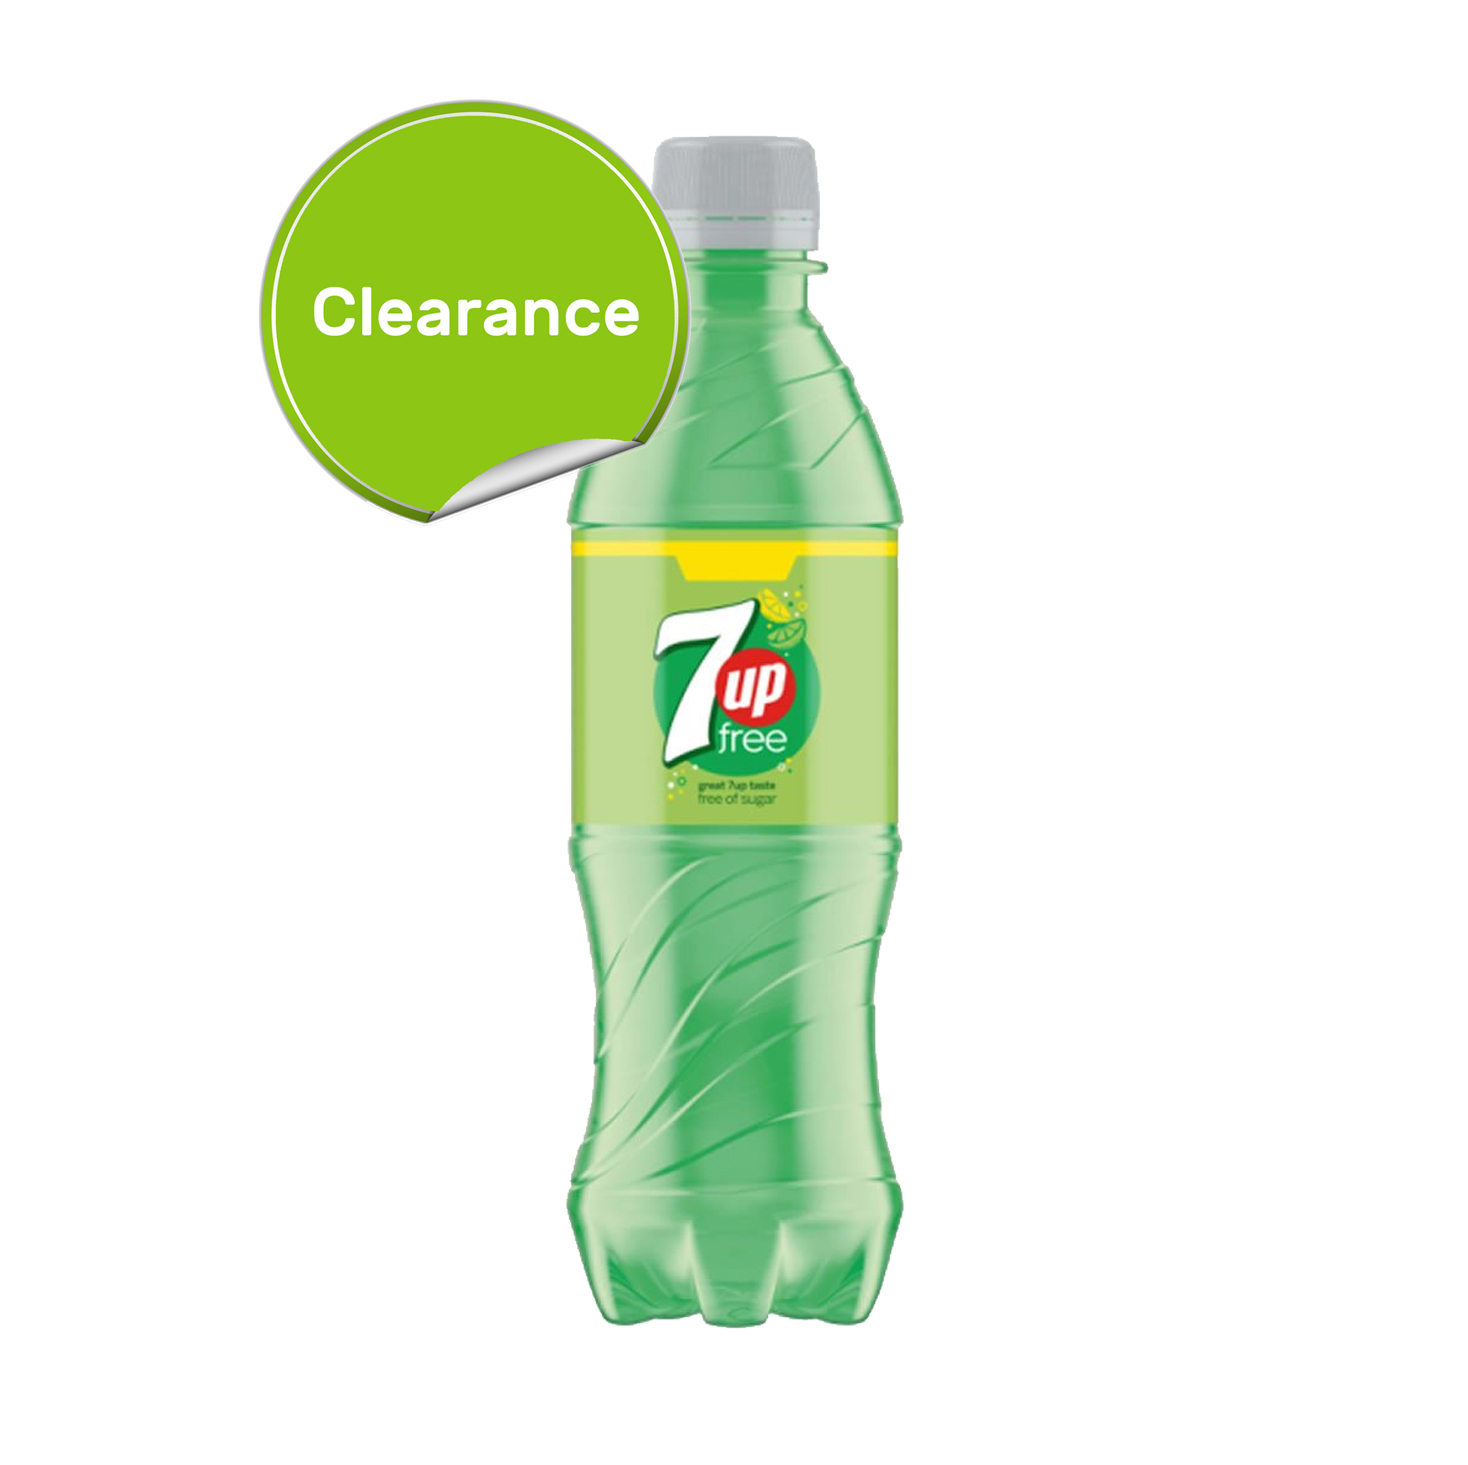 Best Before 31/05/2021 7UP Free 375ml